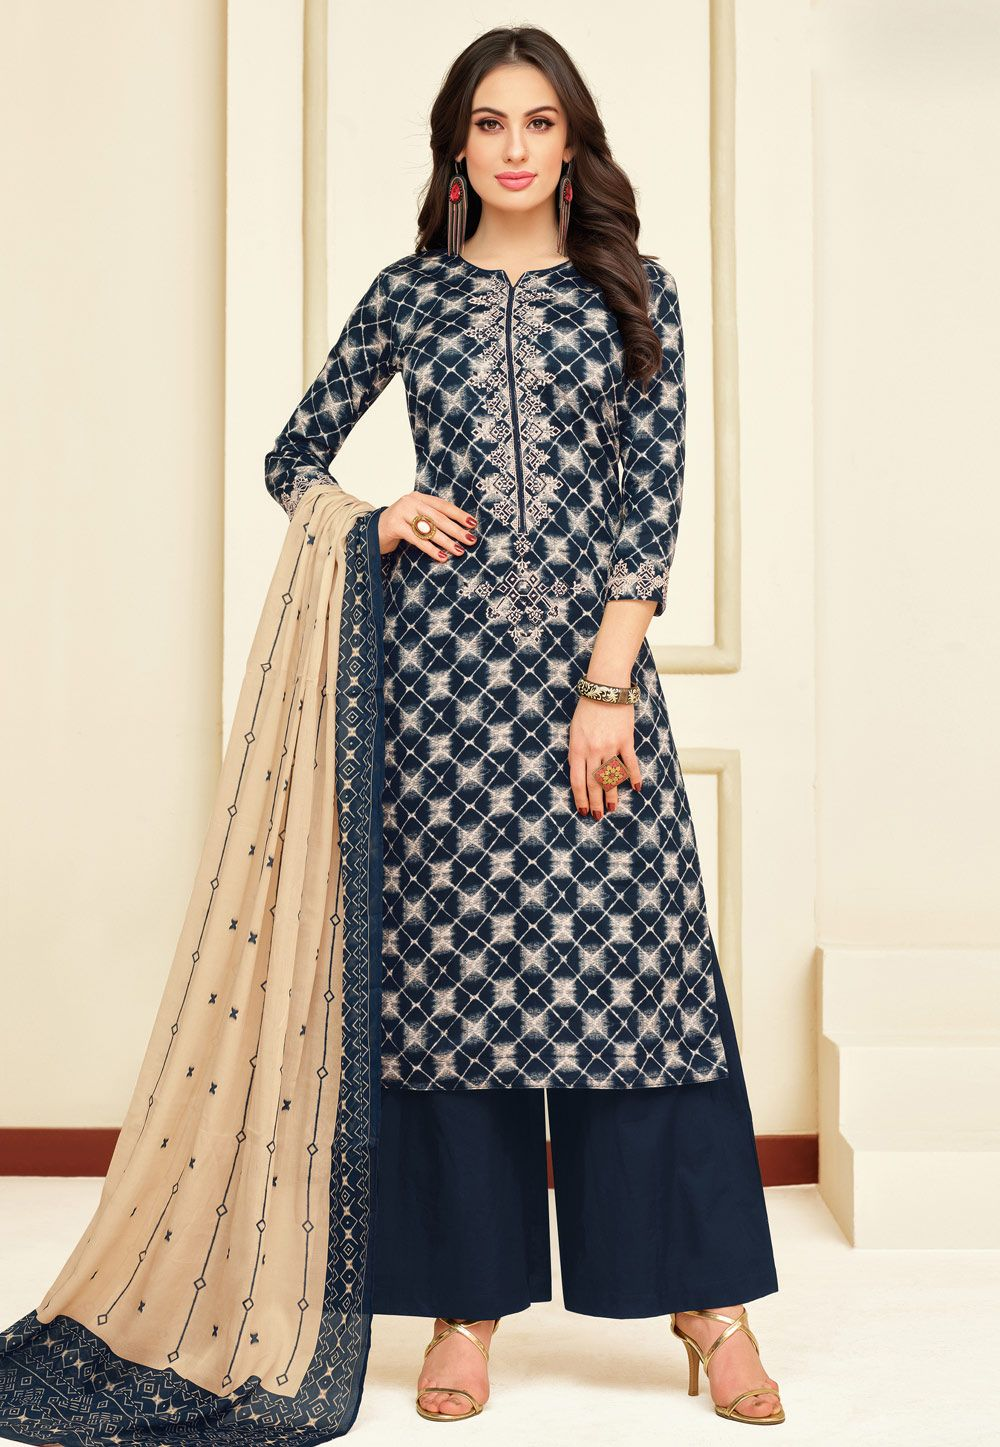 2af03f67ca Buy Navy Blue Chanderi Kameez With Palazzo 154841 online at lowest price  from huge collection of salwar kameez at Indianclothstore.com.